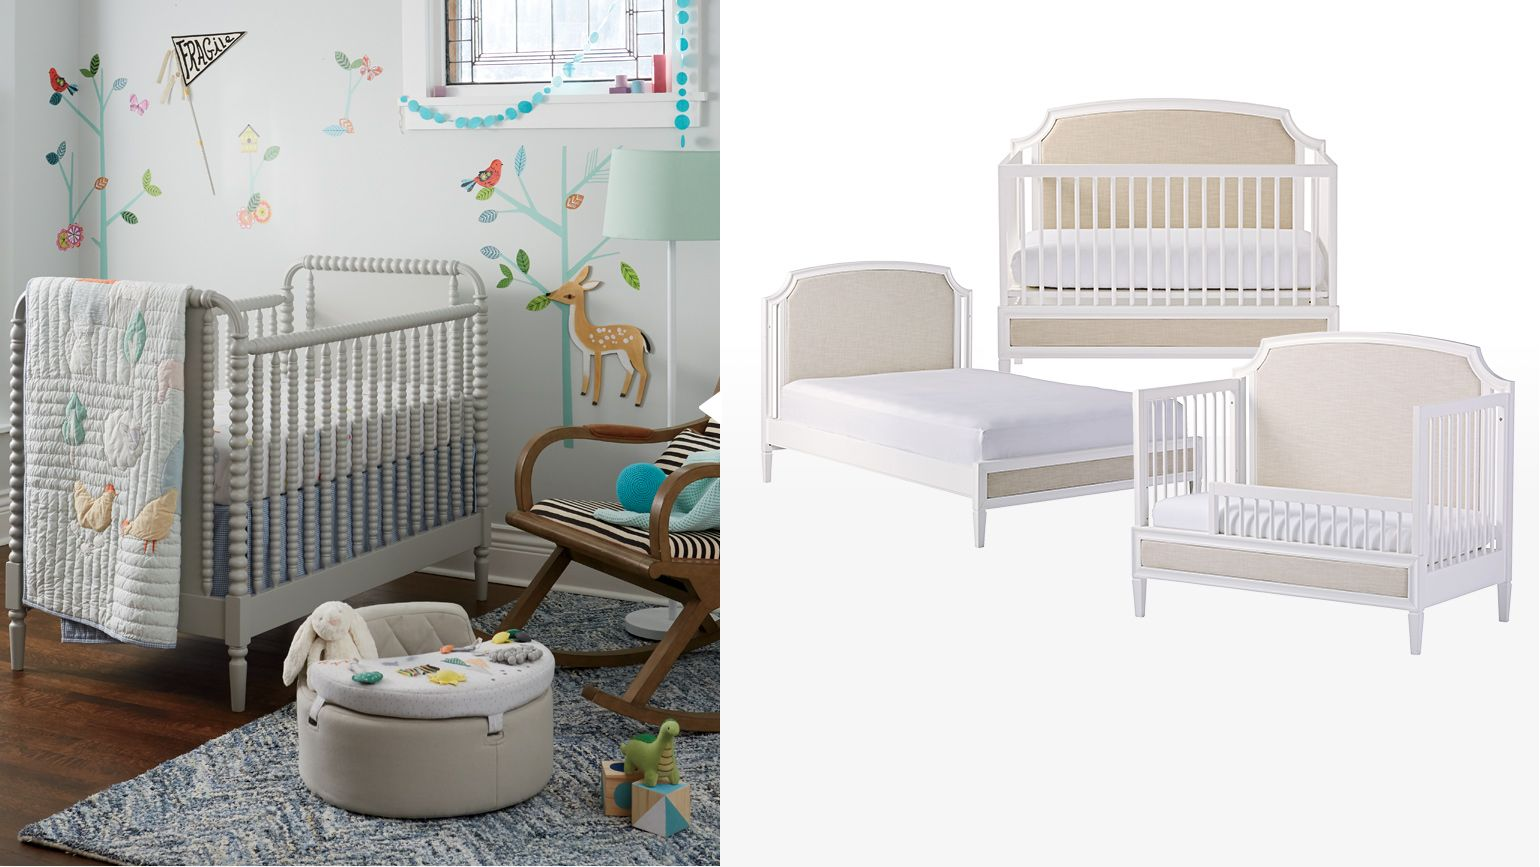 Is crate and barrel furniture good quality - Best Cribs Ever Baby